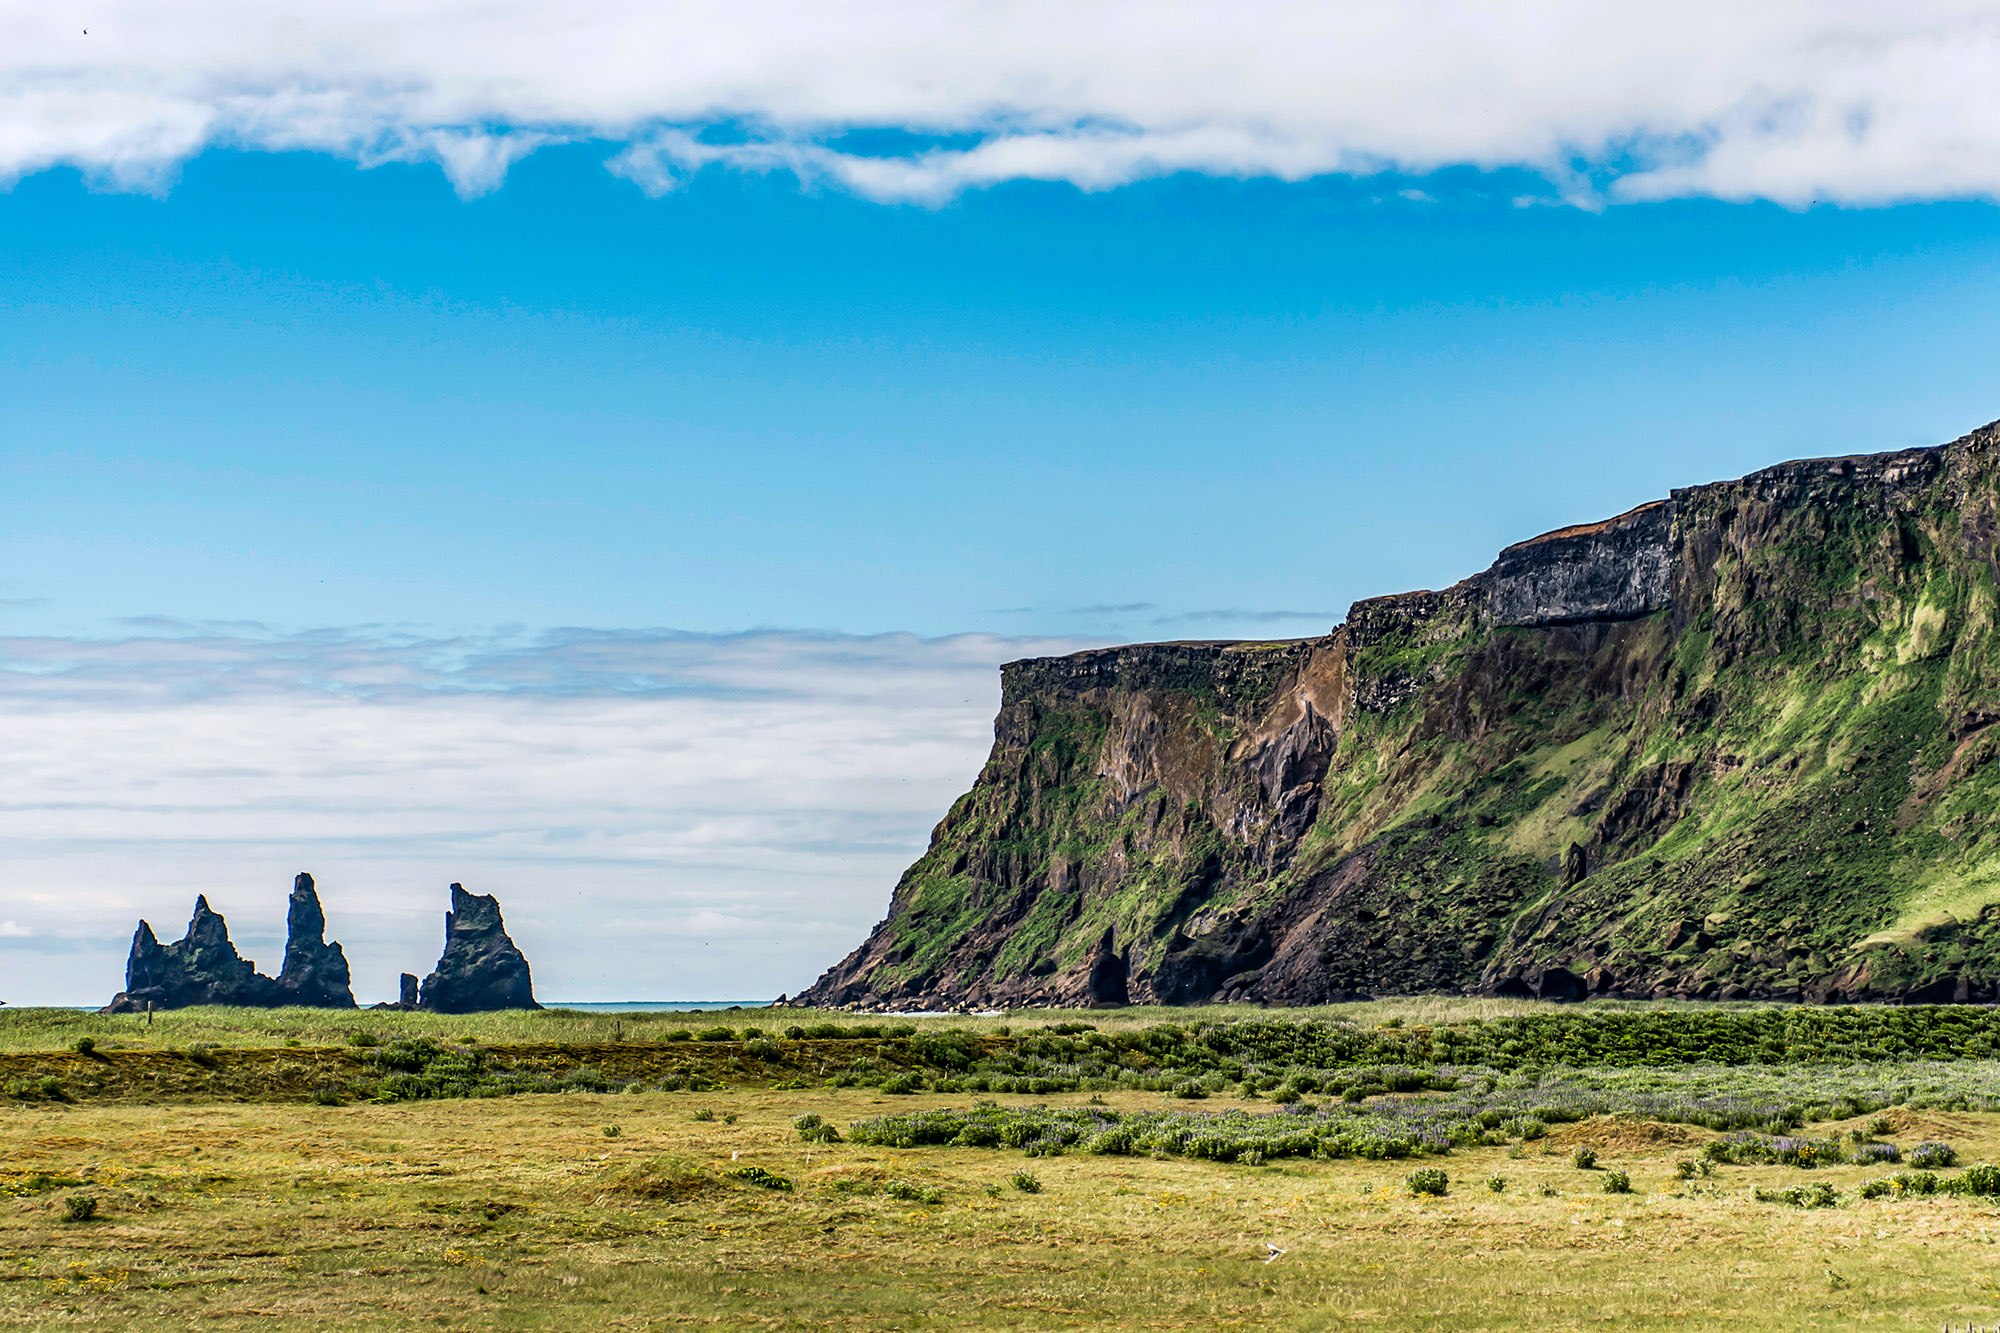 Epic surreal Landscape in Iceland with green grass and rocks